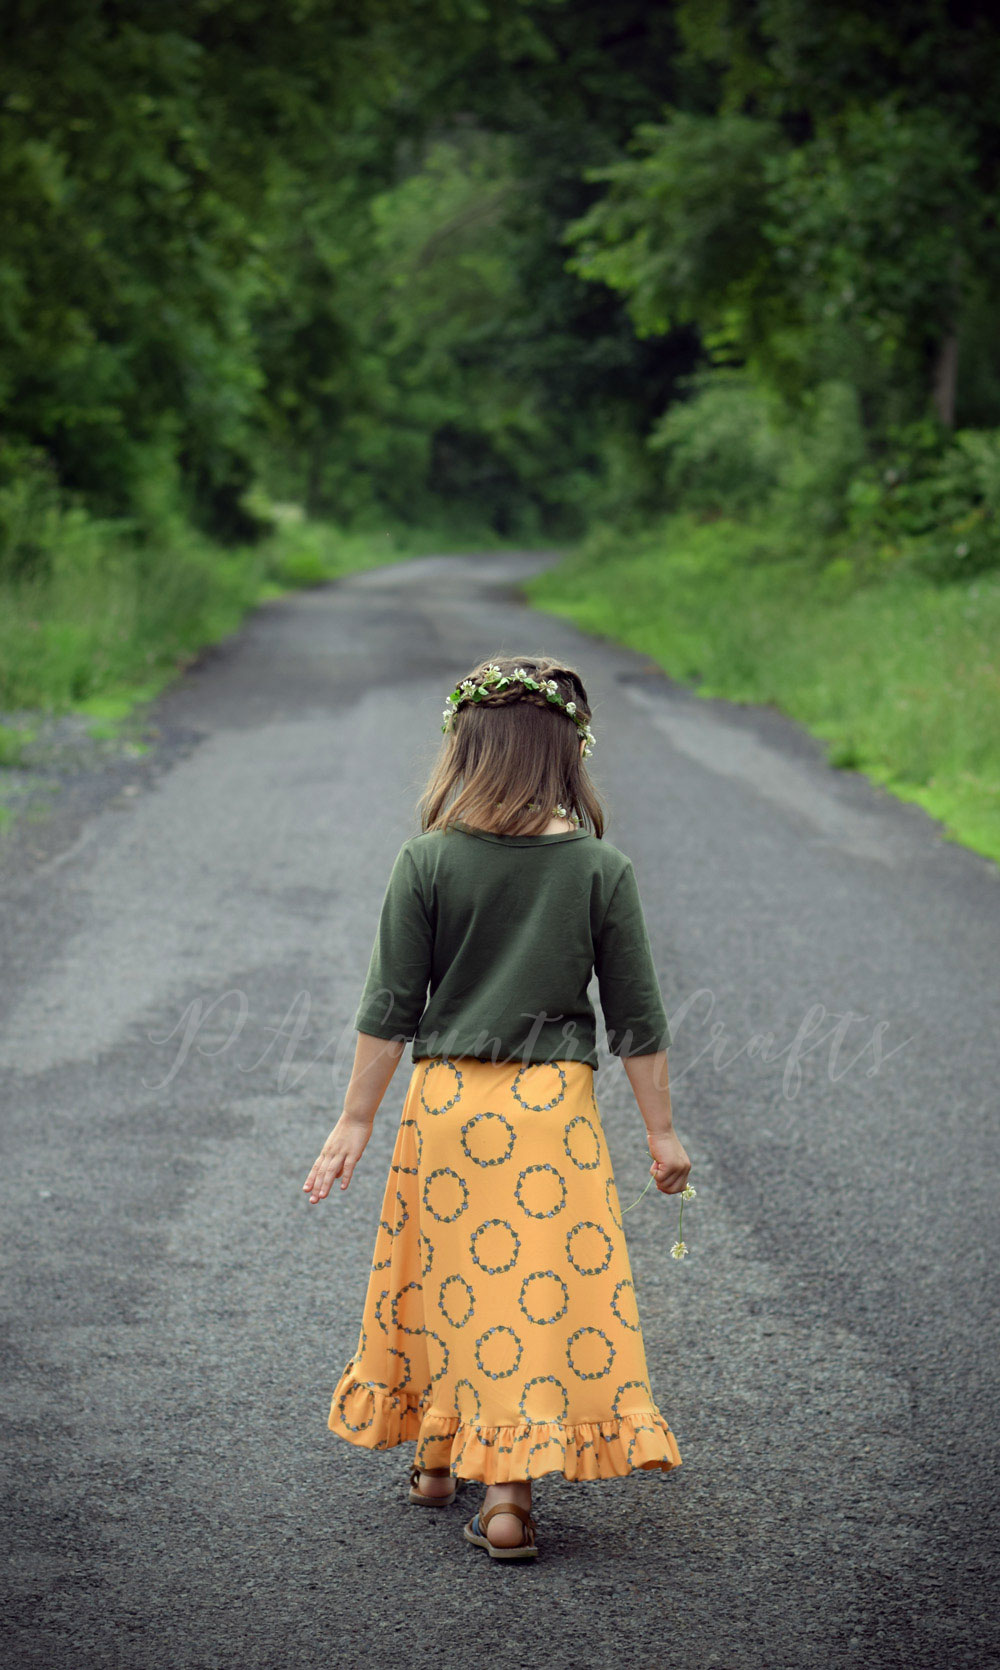 I love this girls skirt made of Clover Chains DBP for Project Nature Adventure